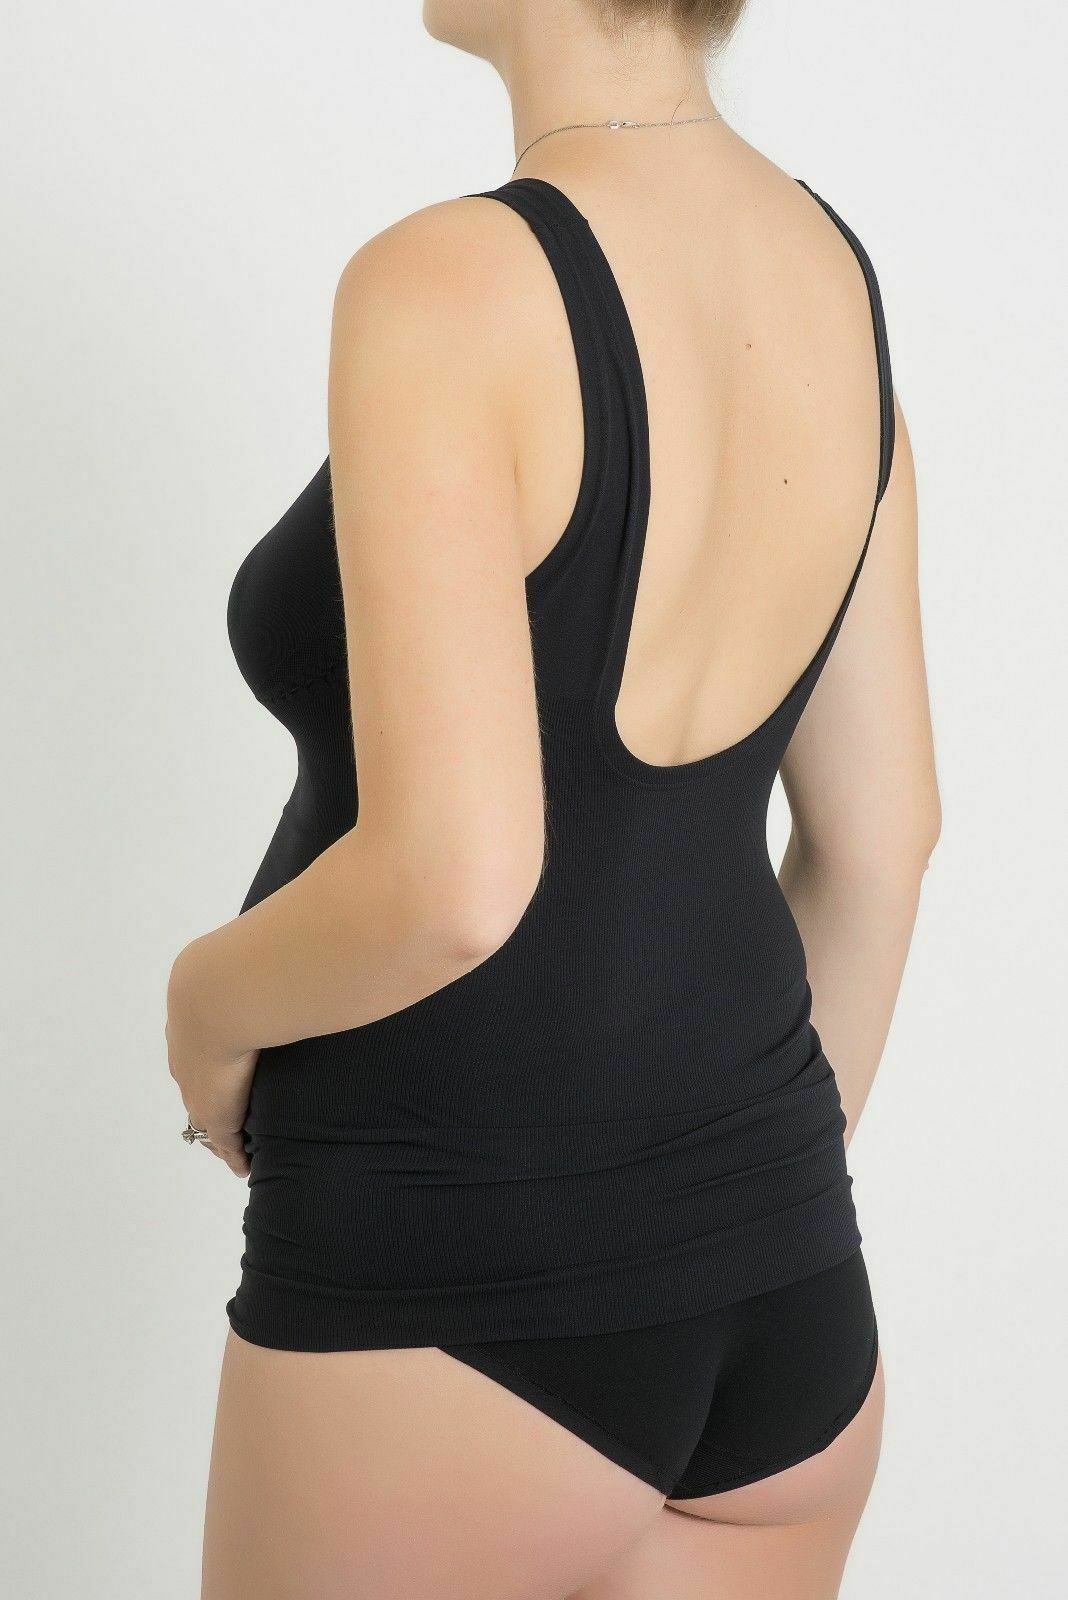 Bellissima-Women-039-s-Maternity-Tank-Top-Light-Breast-Belly-Support-Pregnancy-Cami thumbnail 28